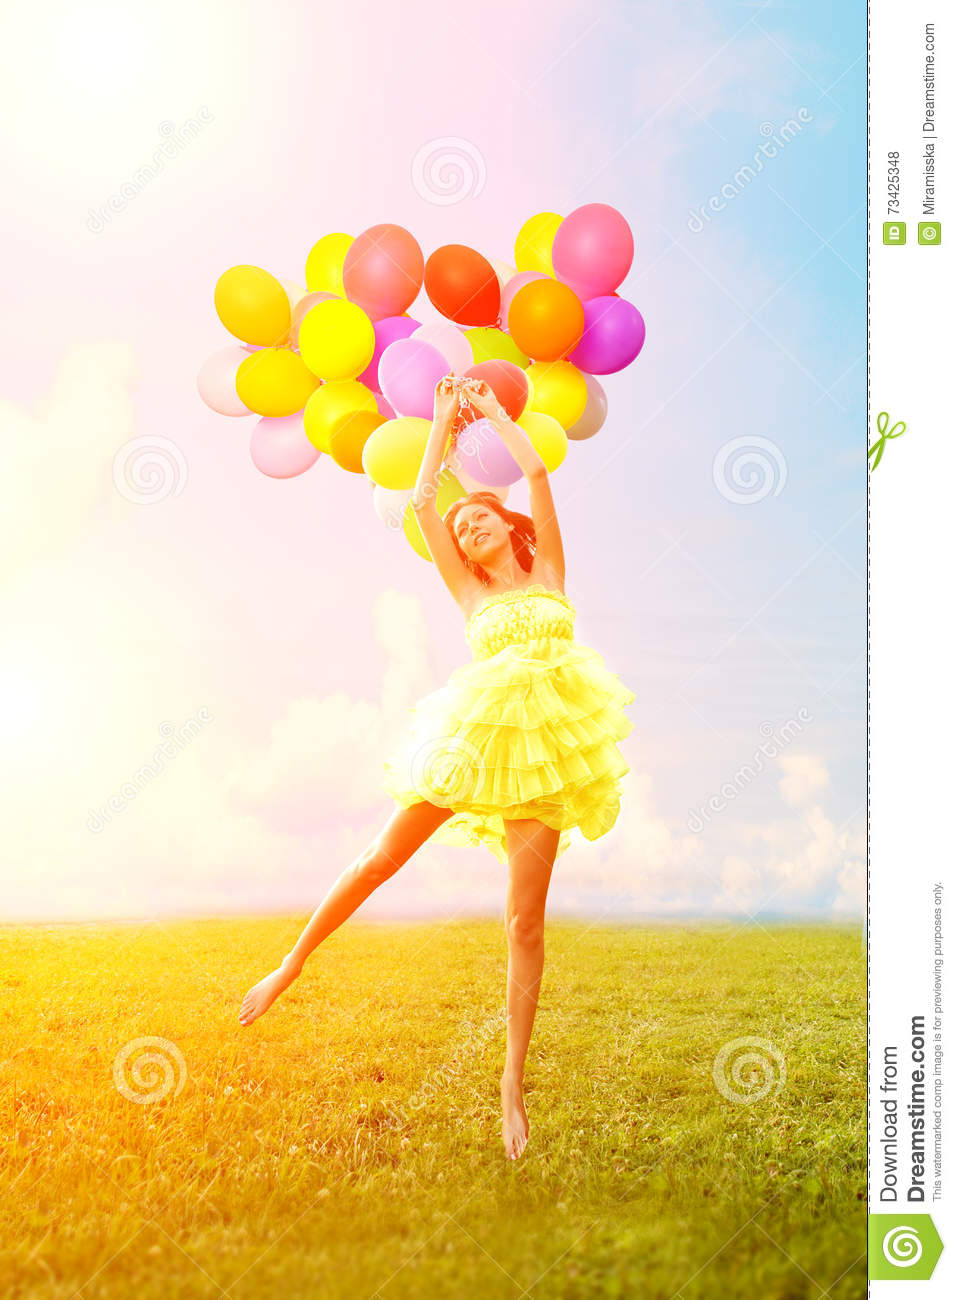 Happy Birthday Woman Against The Sky With Rainbow Colored Air Ba